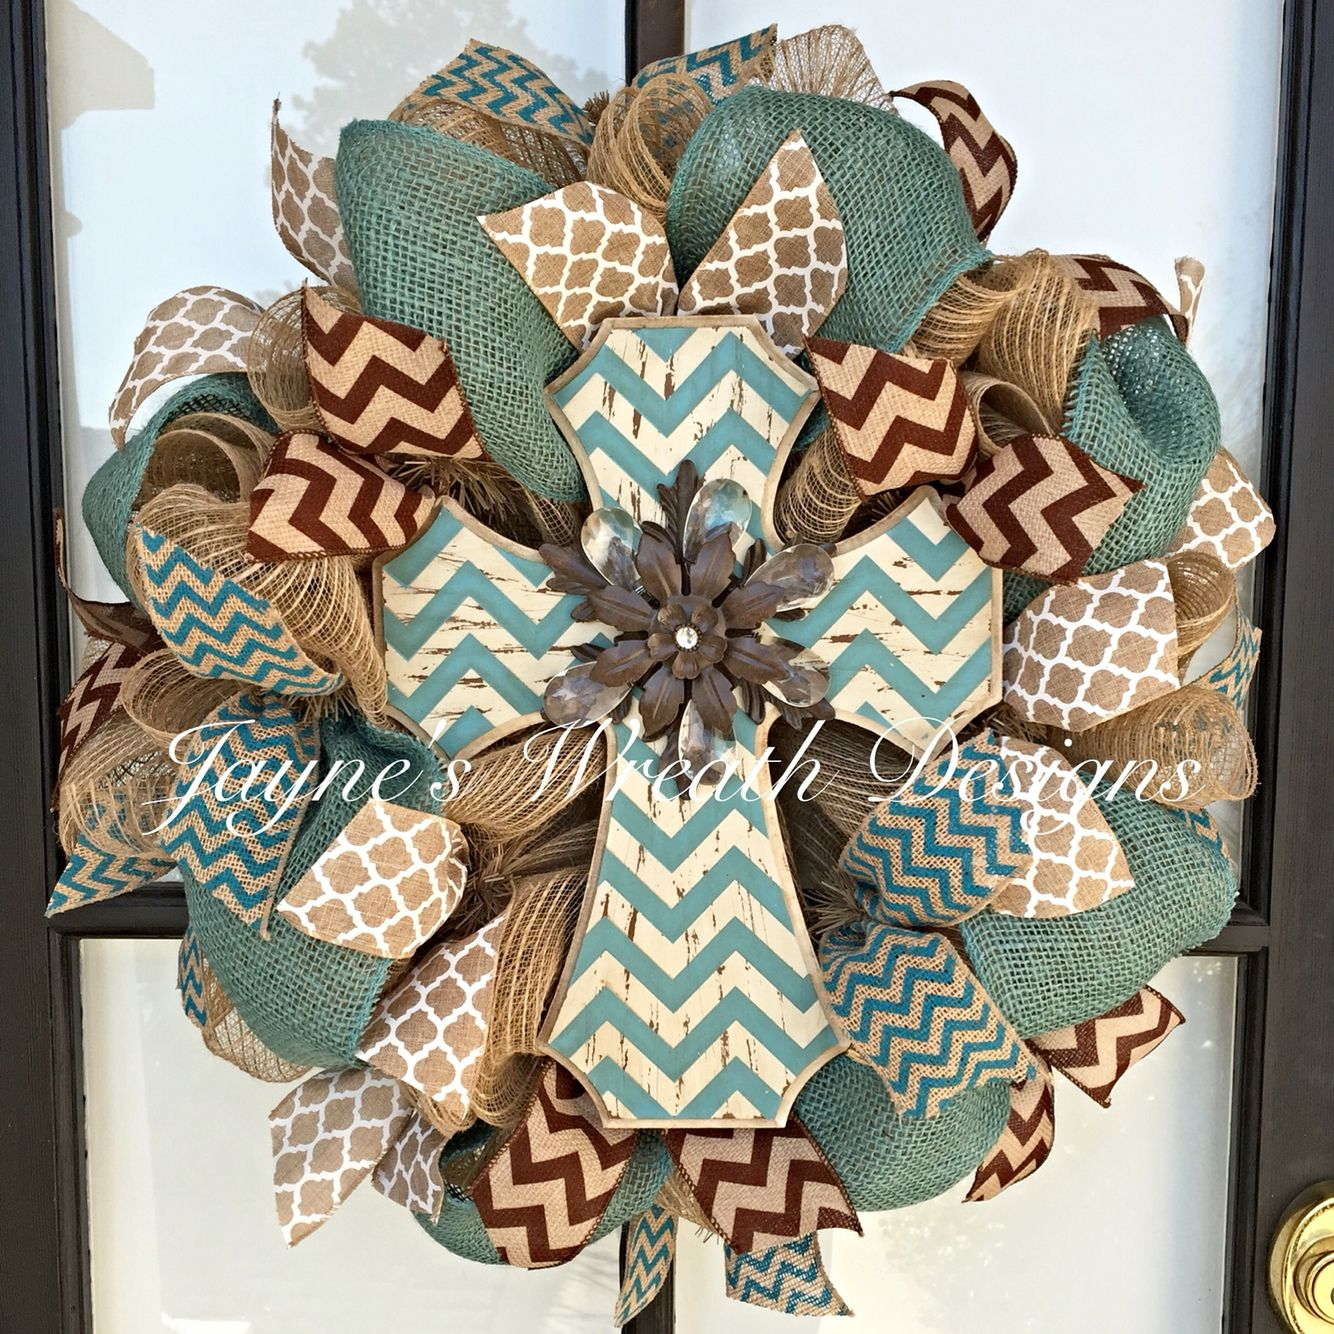 Burlap Wreath Ideas Part - 18: Burlap Wreath With Cross - Great For All Year - By Jayneu0027s Wreath Designs  On Fb